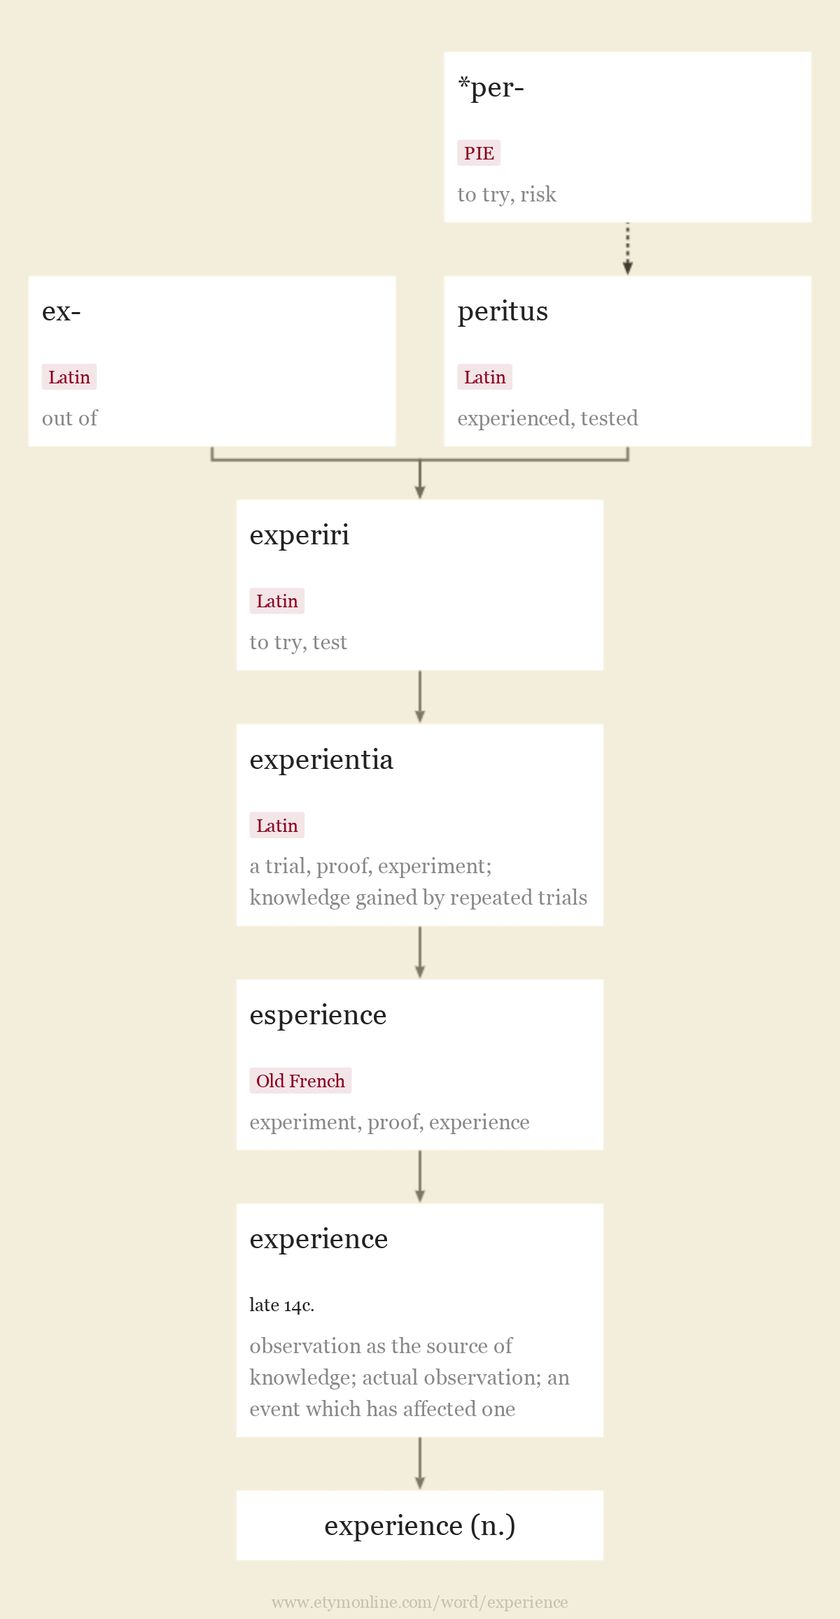 Origin and meaning of experience